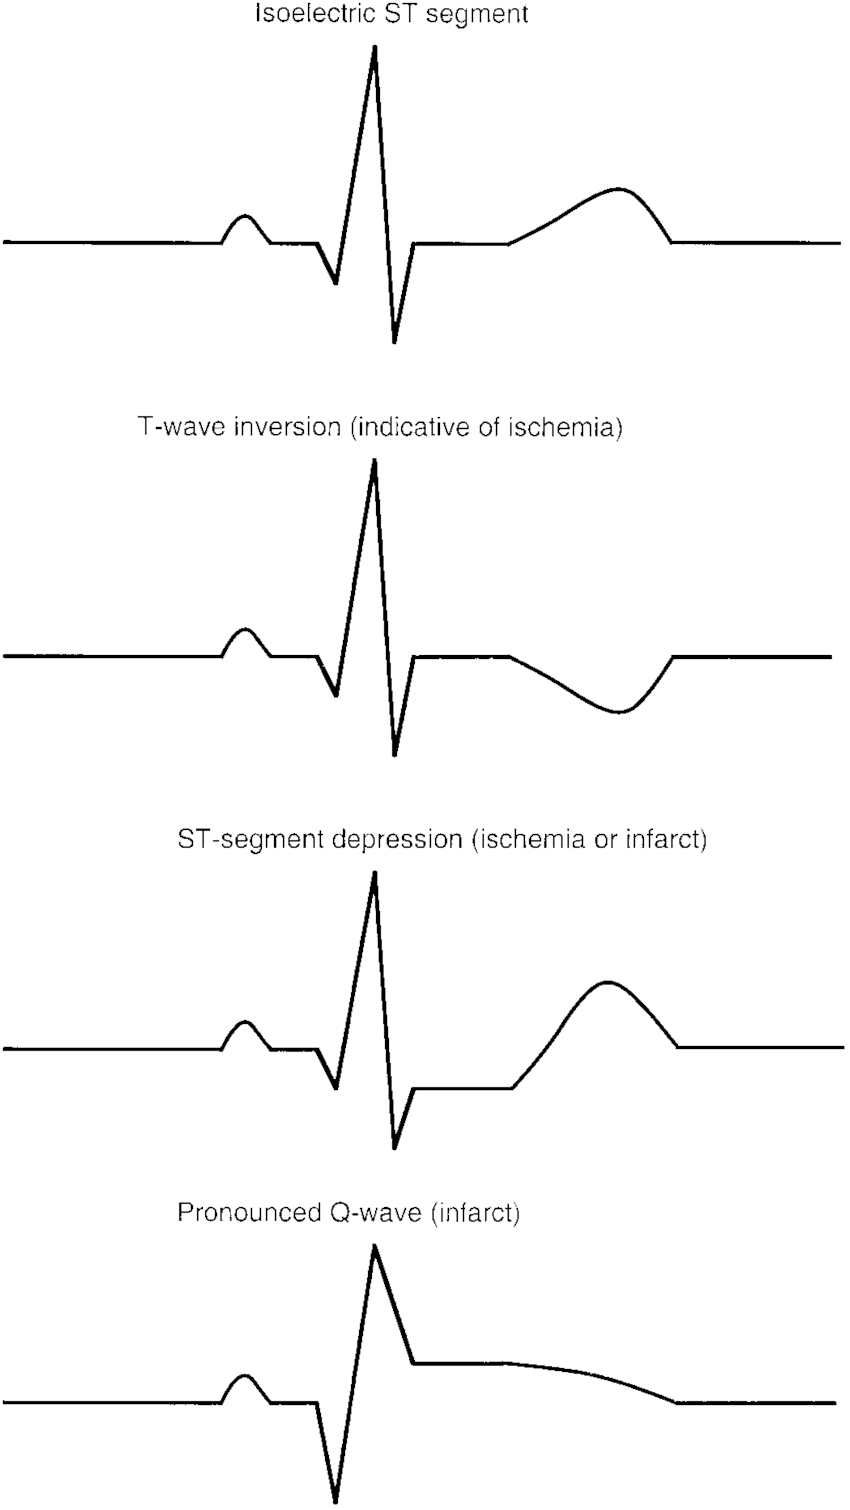 Example Of 1 Normal (Isoelectric) Ecg Tracing And 3 Abnormal